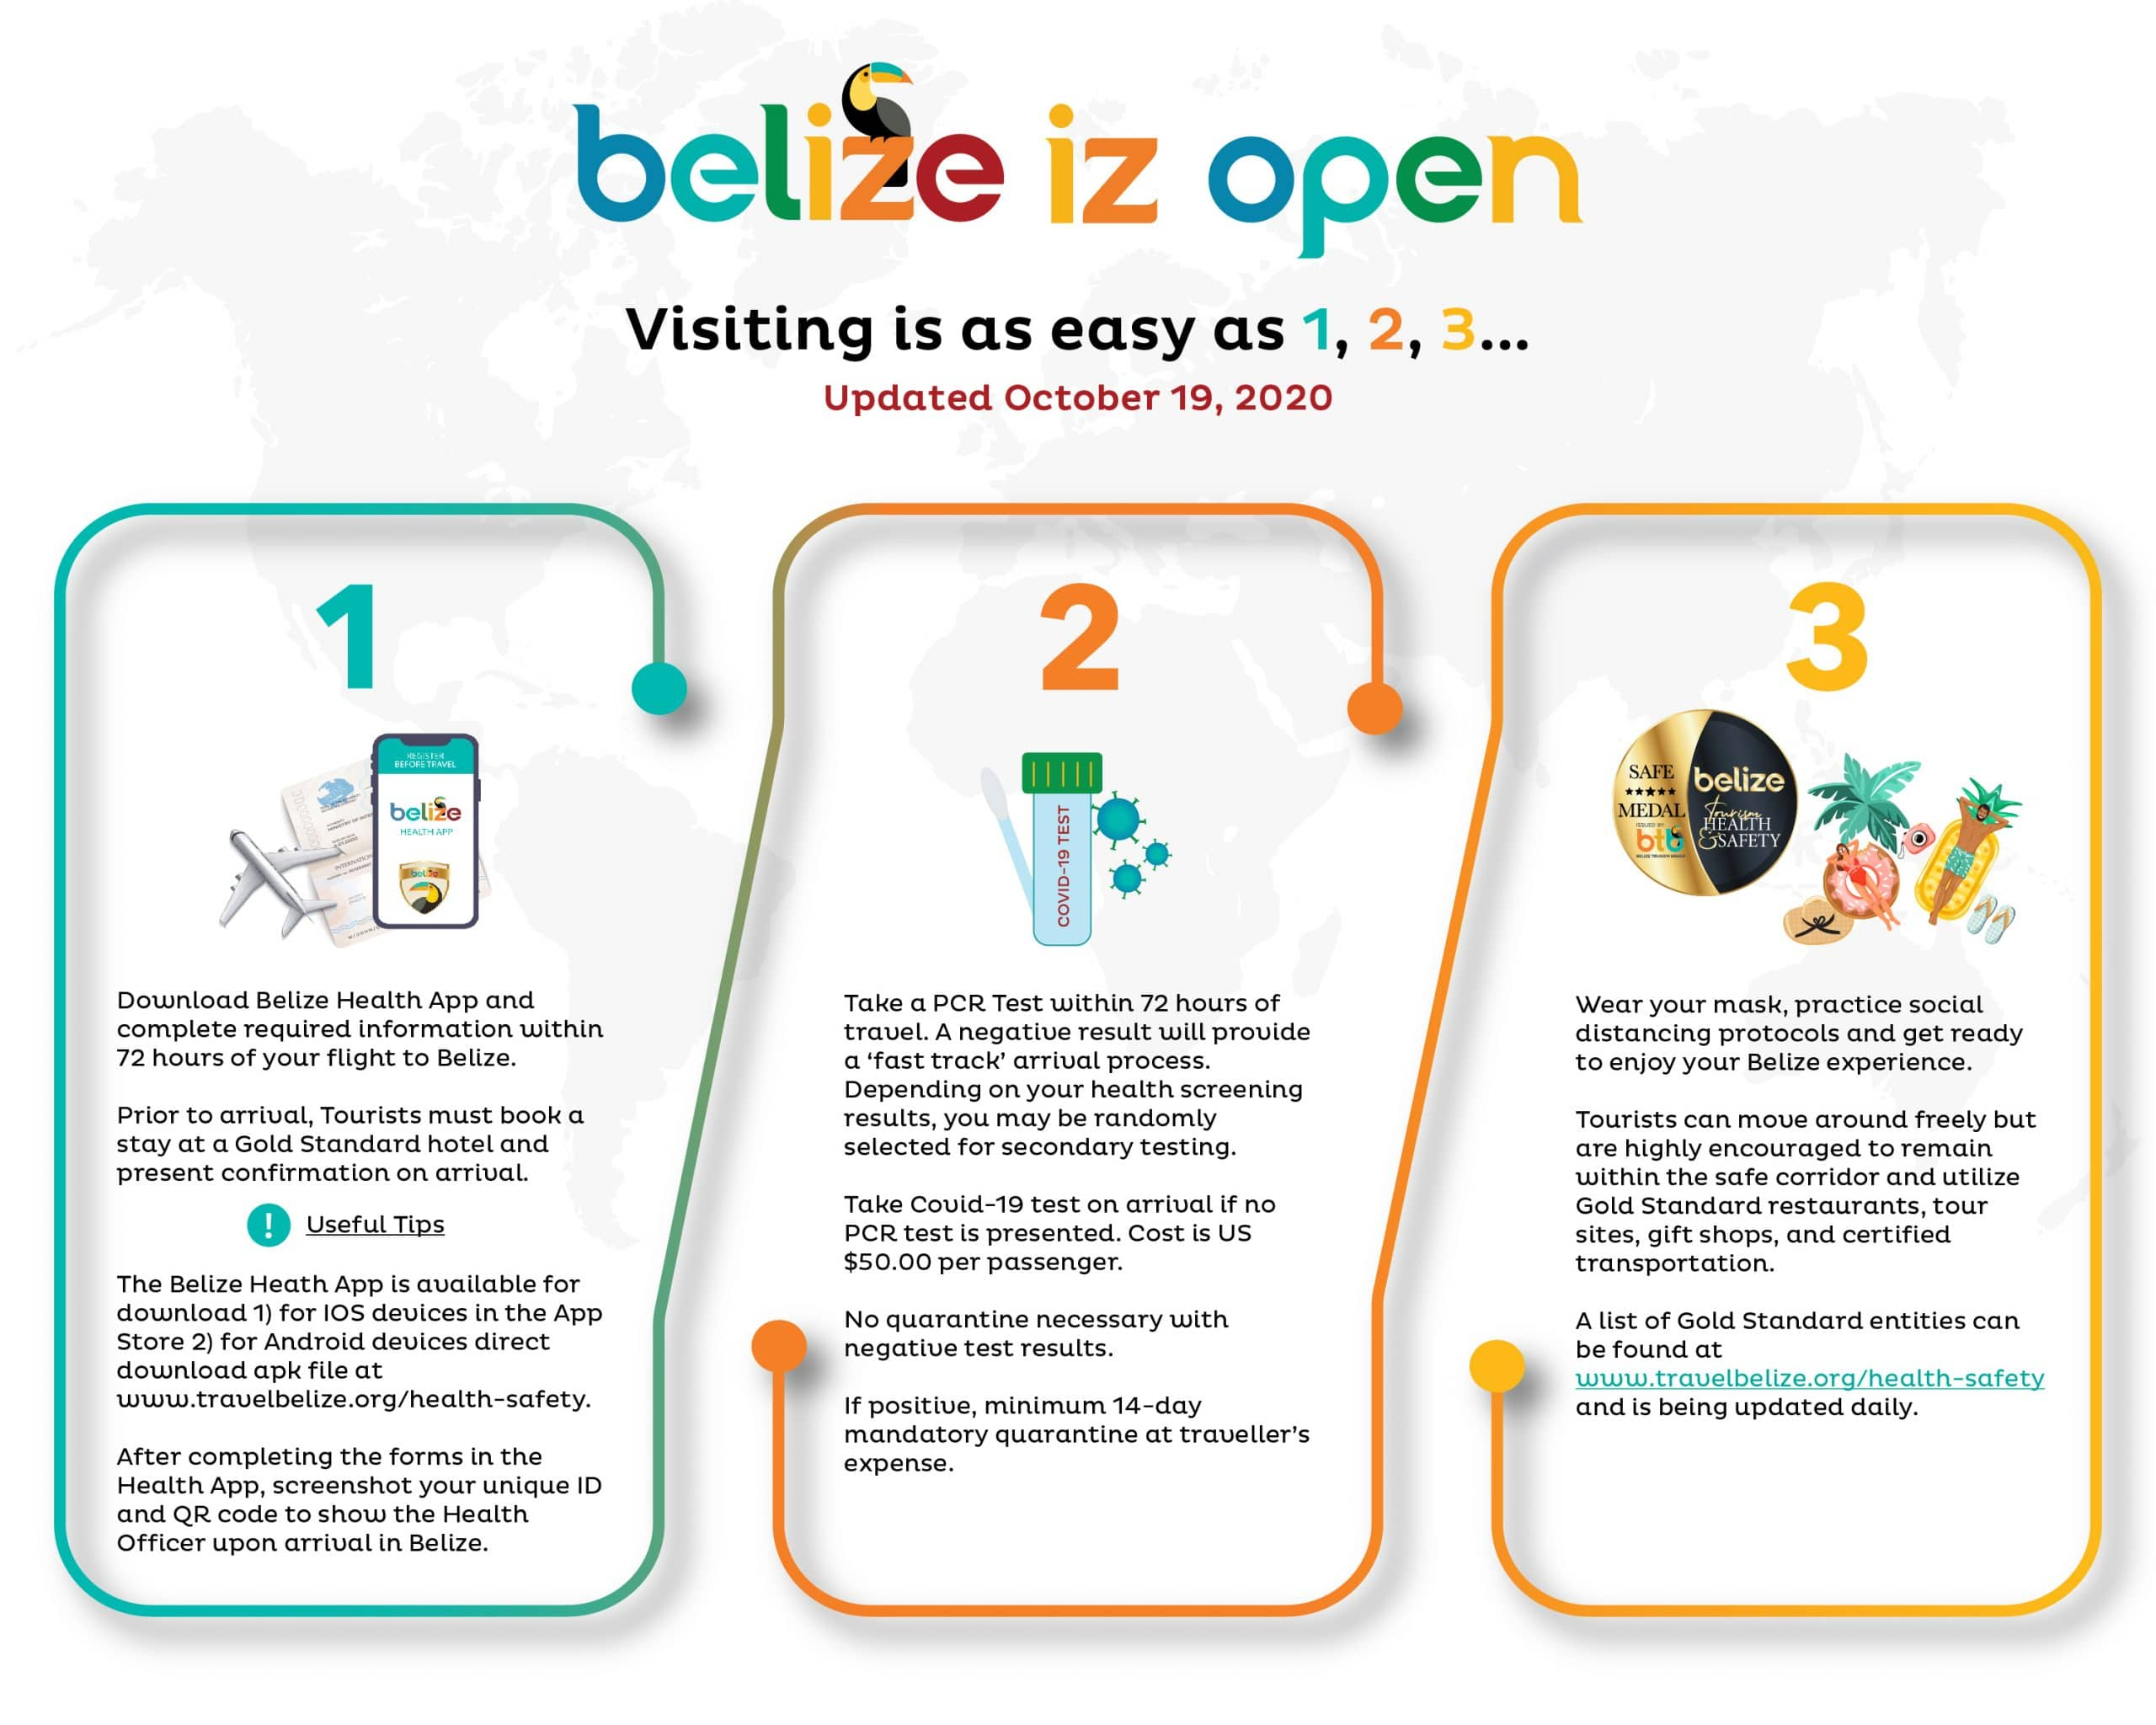 Infographic from Belize tourism board discussing entry protocols into Belize